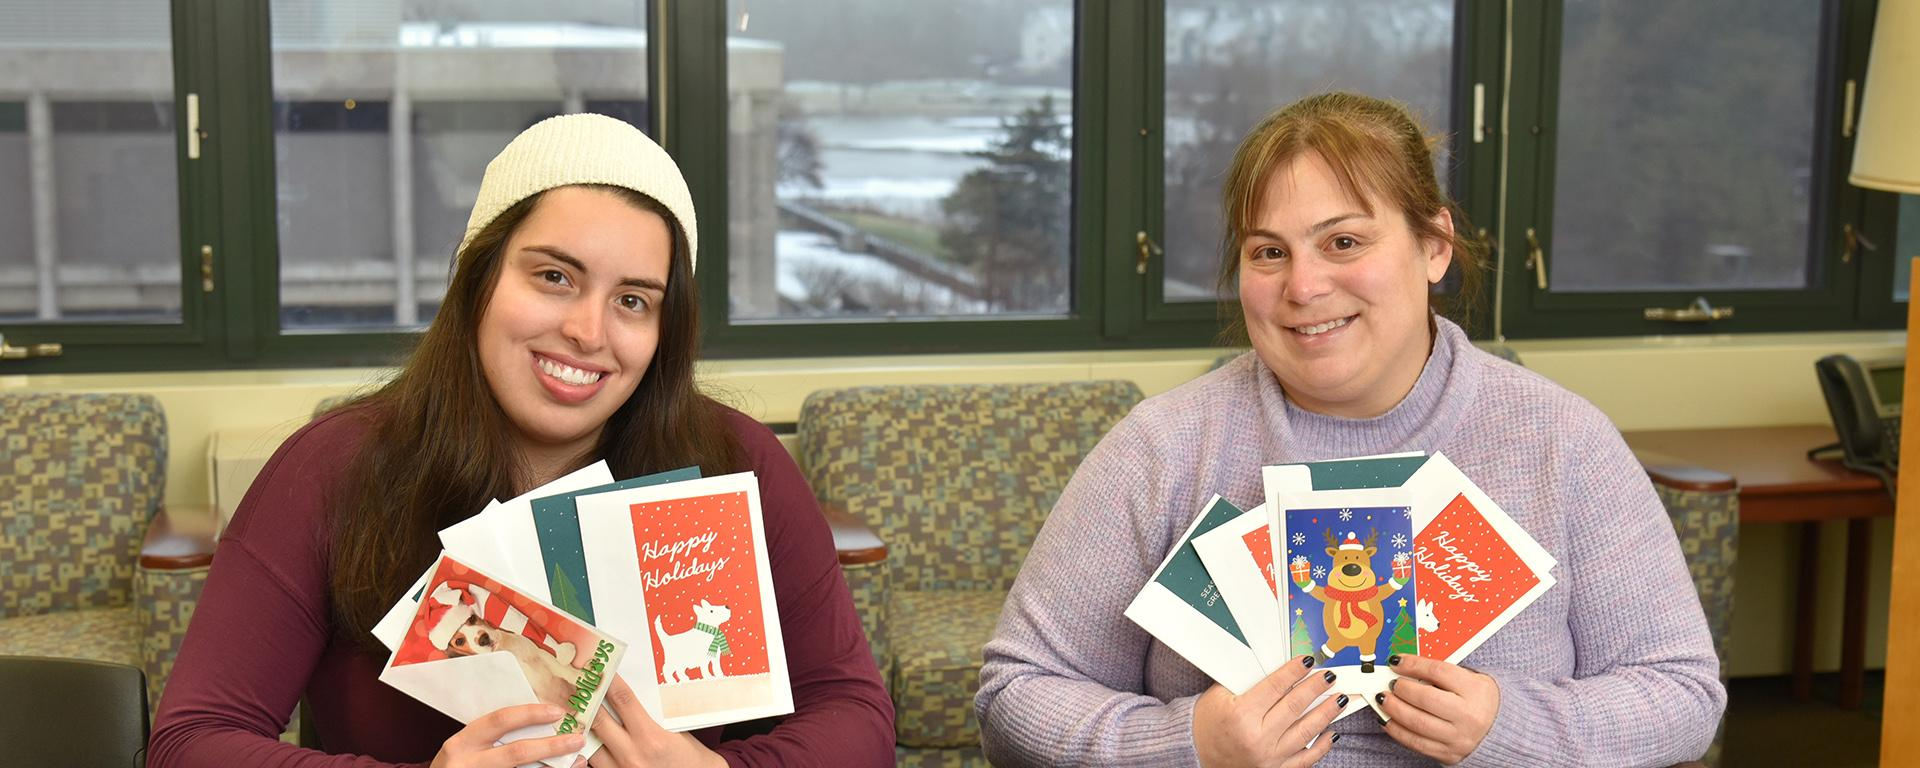 Faculty member Jaclyn Schildkraut is hosting card drive for kids who lost family members to mass shootings; student Sarah Gamarra helps her show off what they've received to date